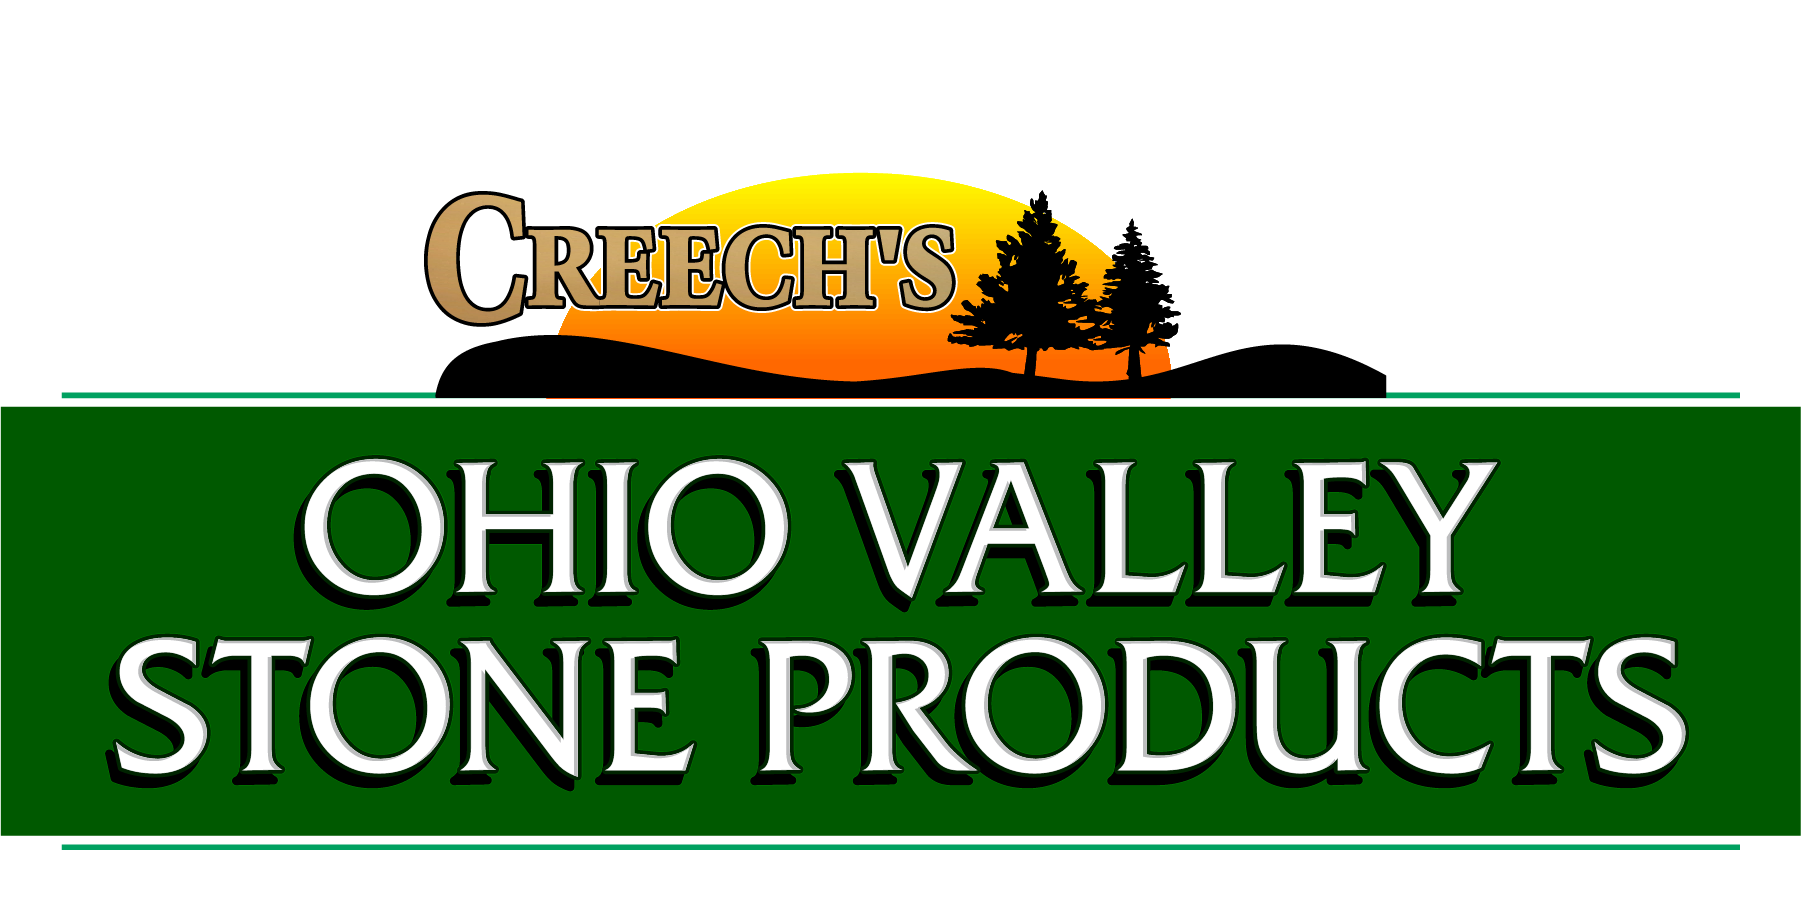 Creech's Ohio Valley Stone